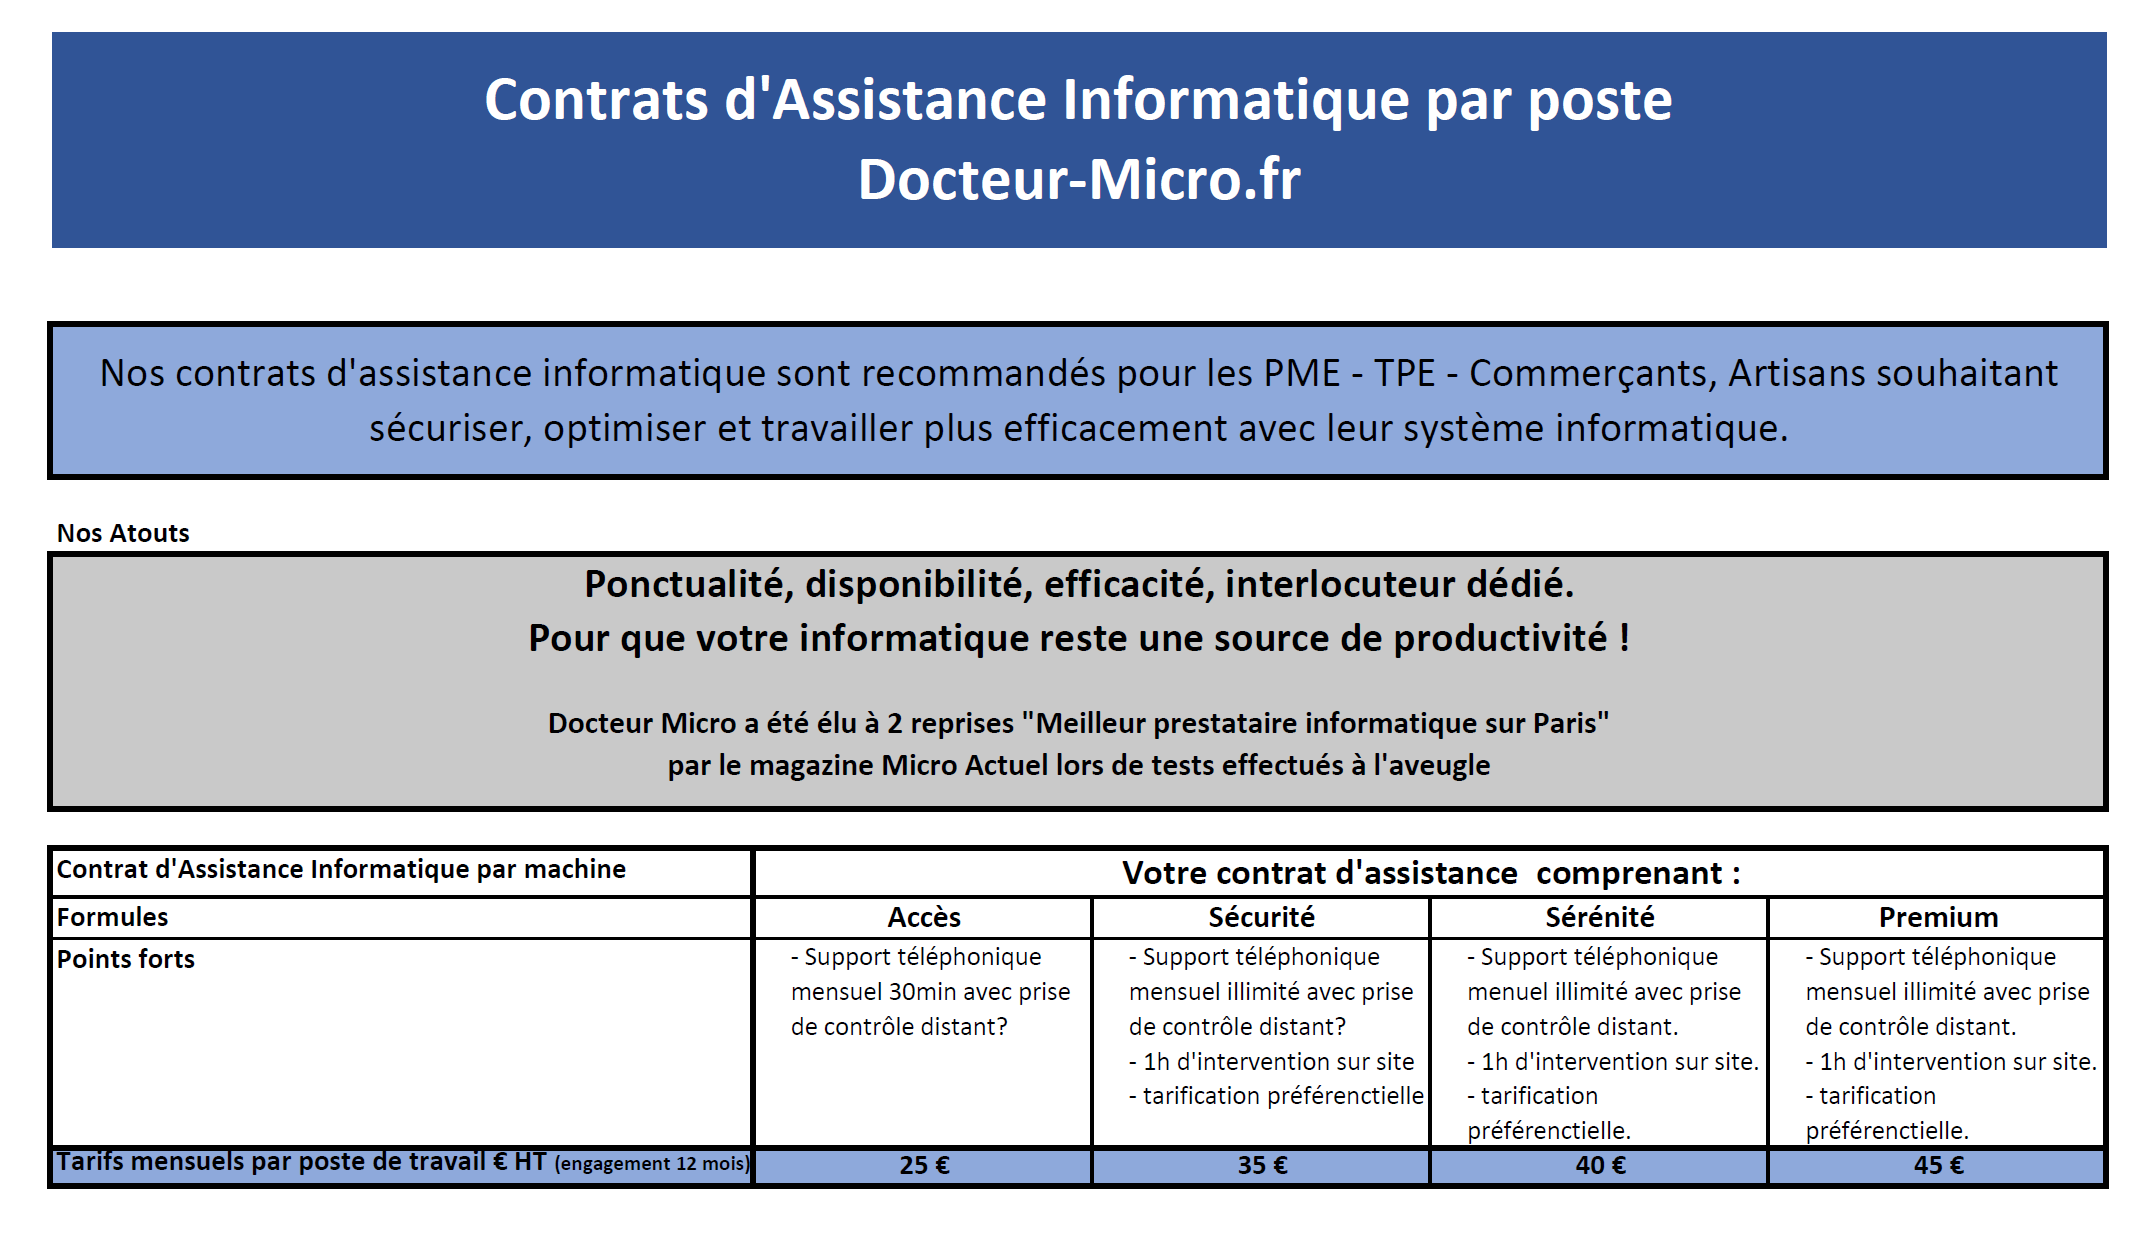 Contrats maintenance informatique docteur micro 2020